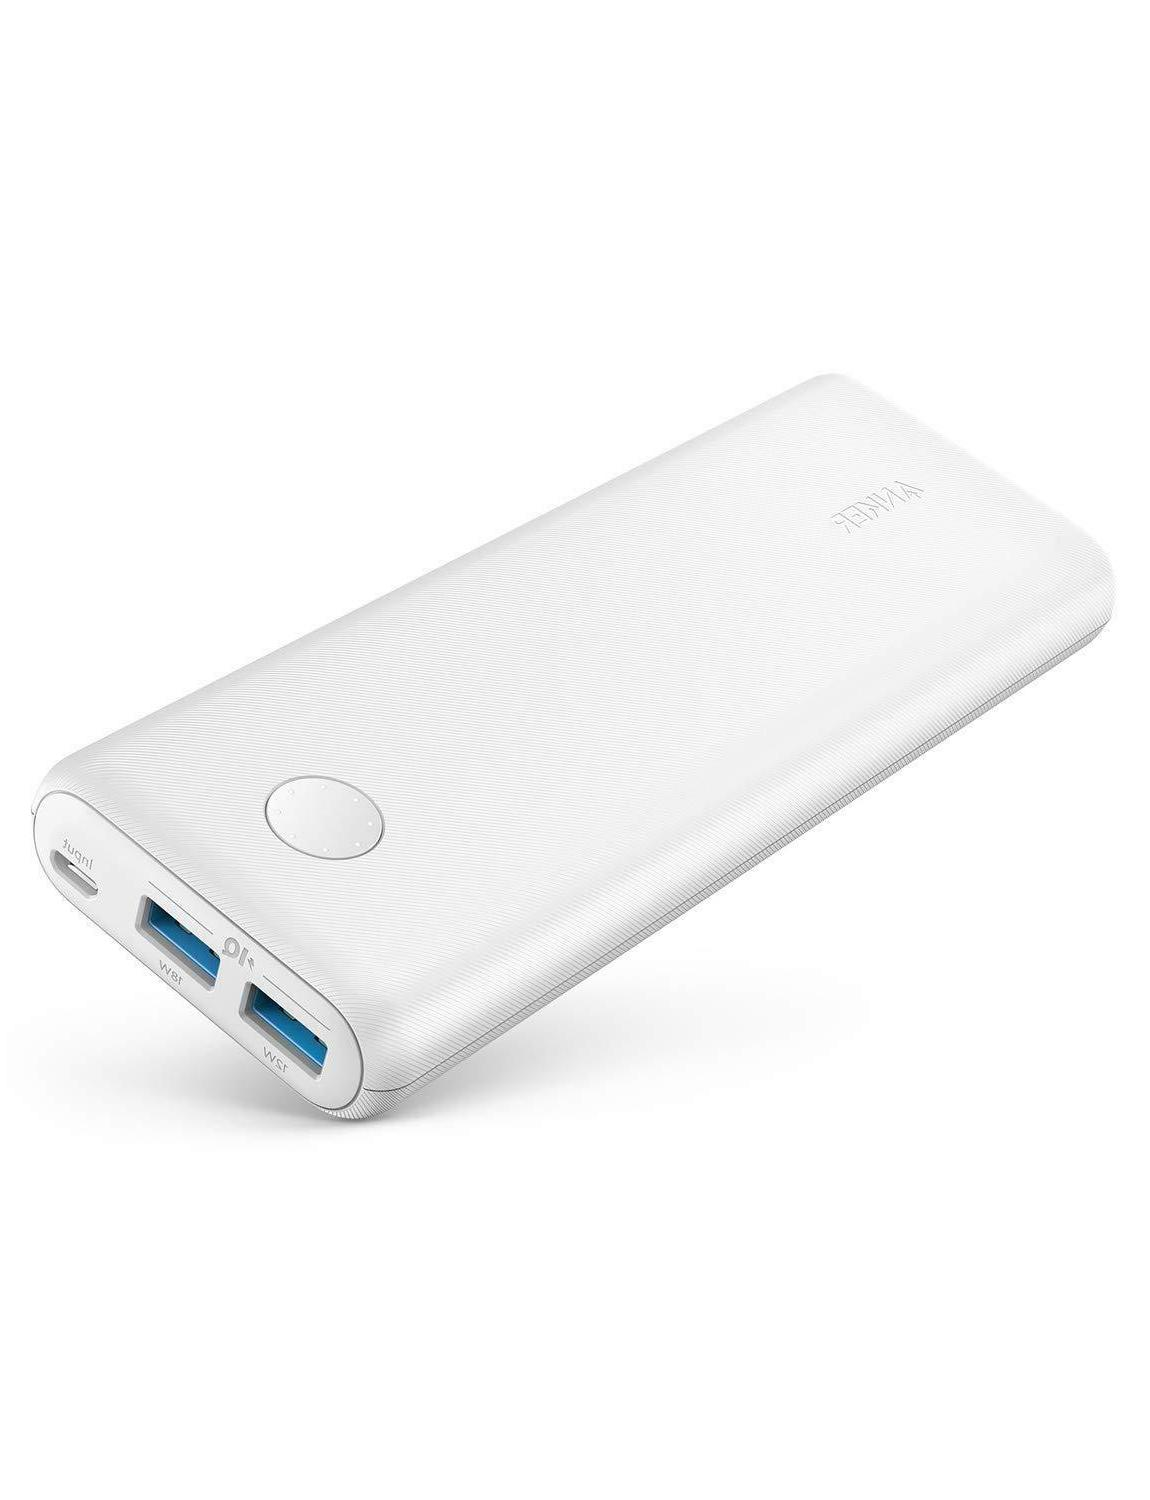 powercore ii 20000 20100mah portable charger